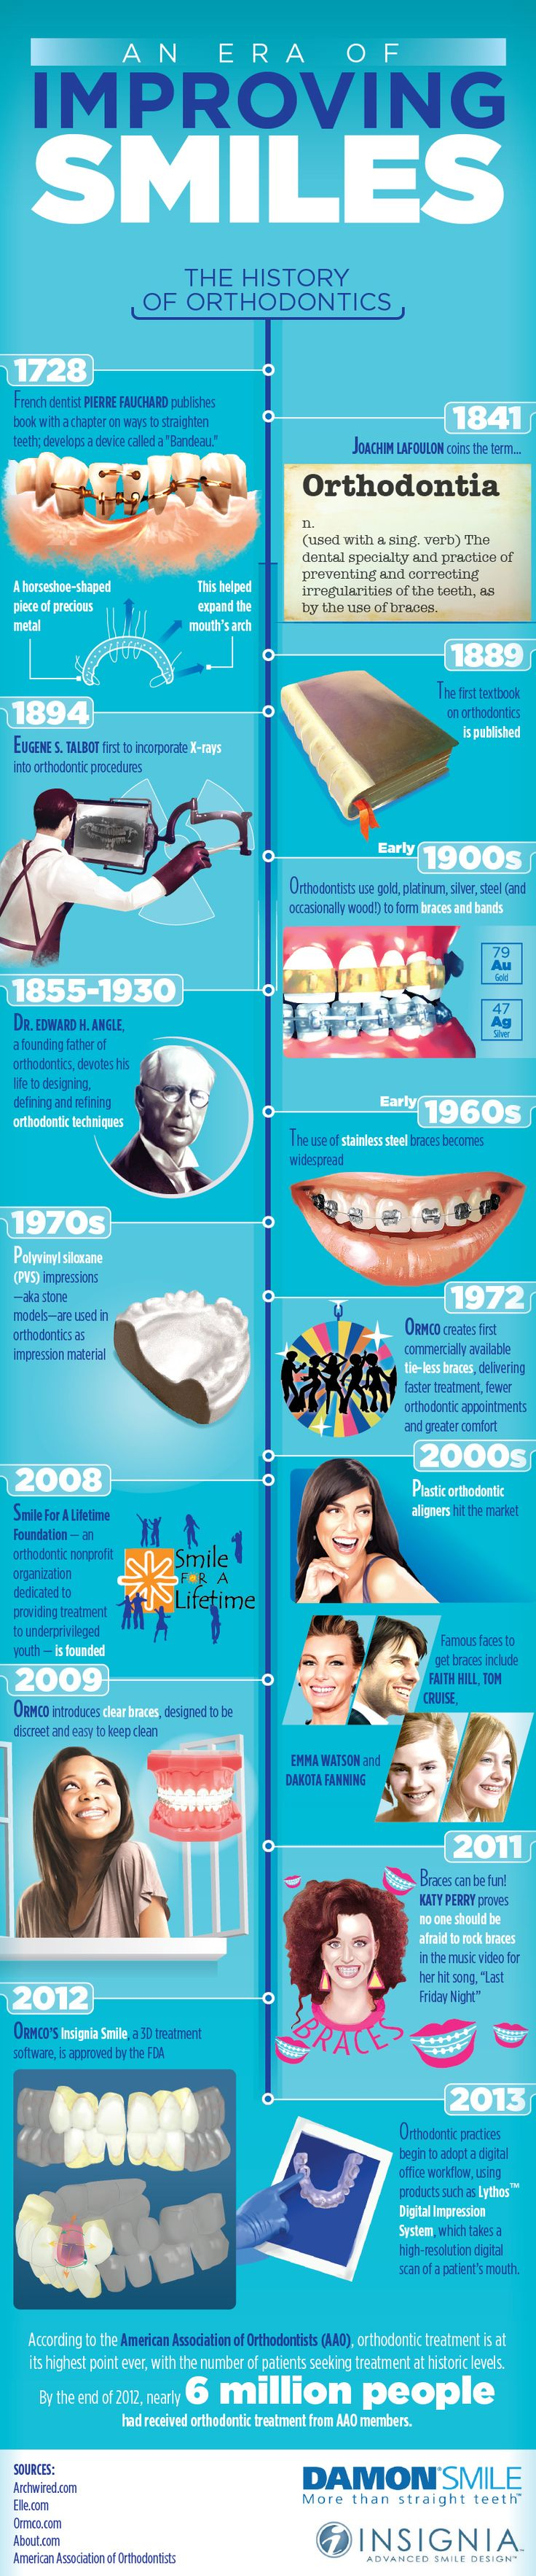 An Era of Smiles with Braces. New technology makes orthodontic treatment even easier and more aesthetic than before!